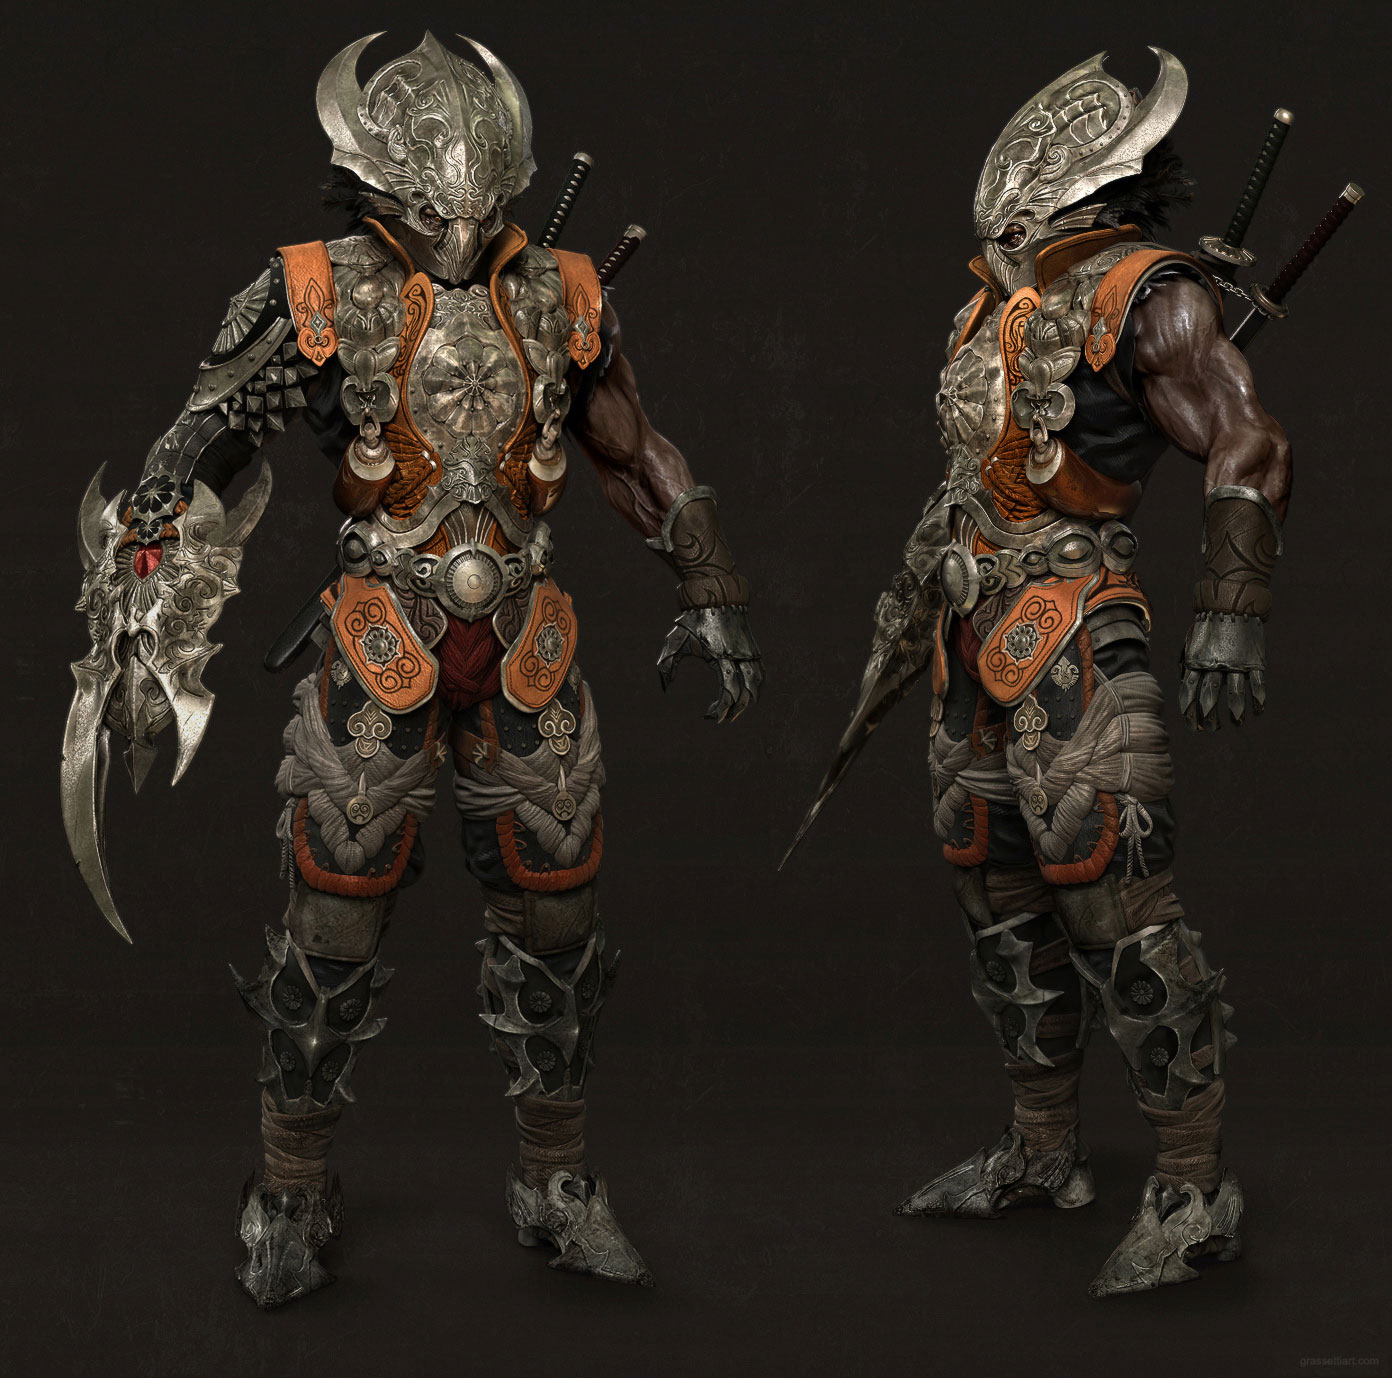 Character Design Zbrush : Images about zbrush artworks on pinterest